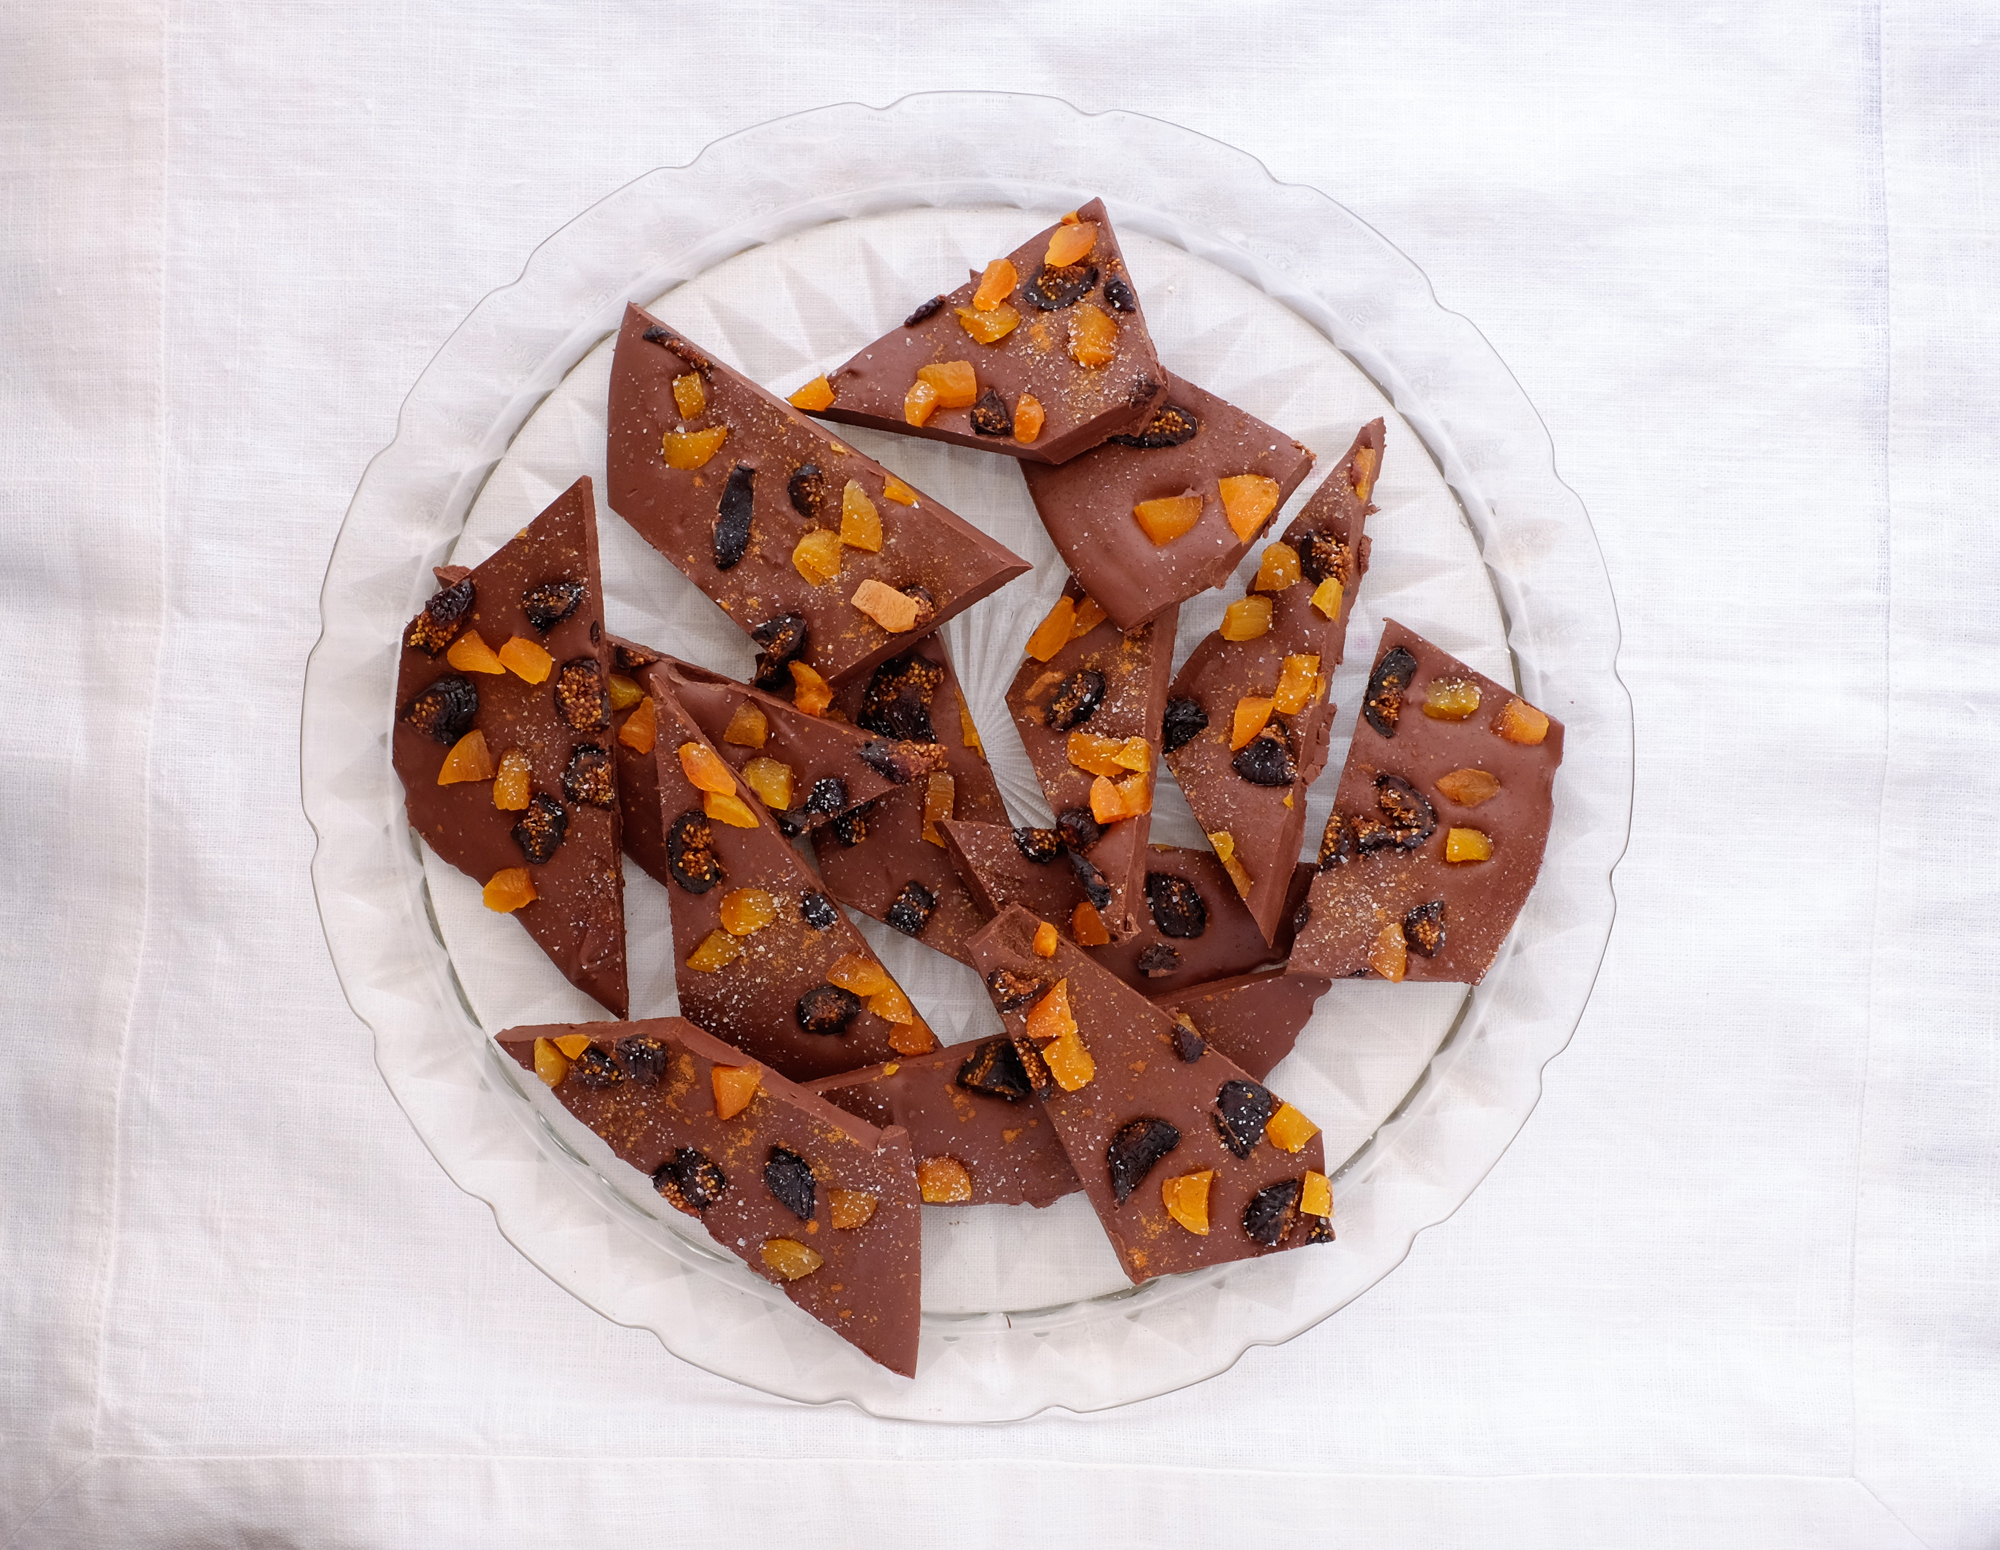 Chocolate Bark With Dried Fruit and Spices